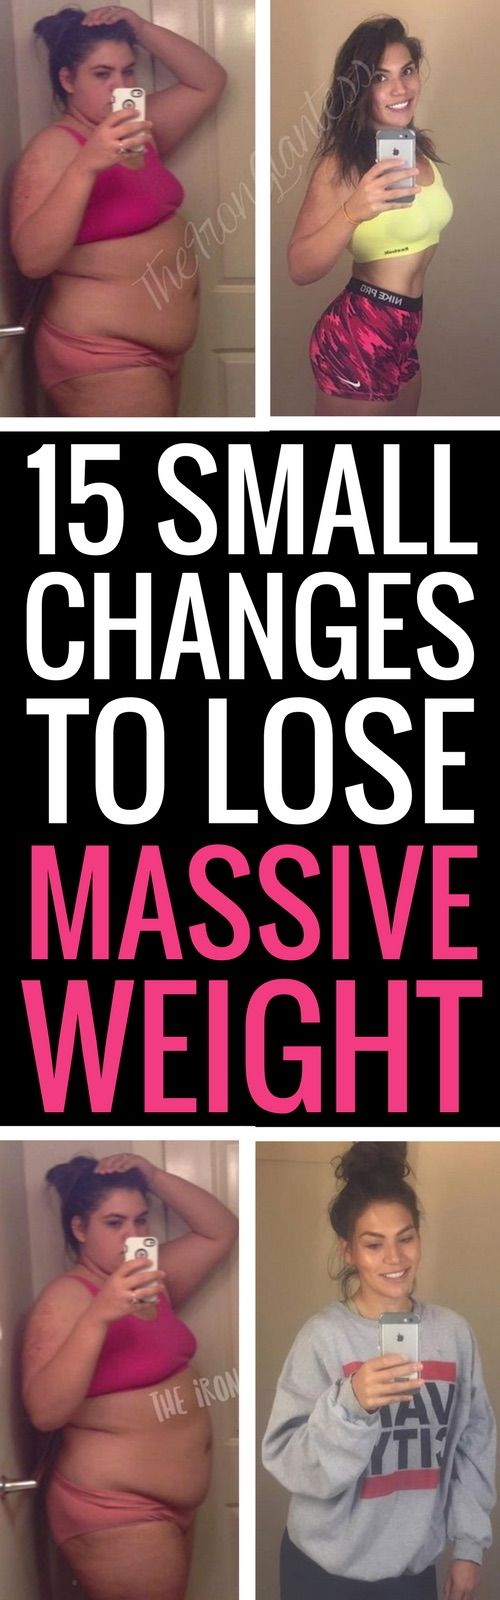 15 tiny changes to lose big weight fast.